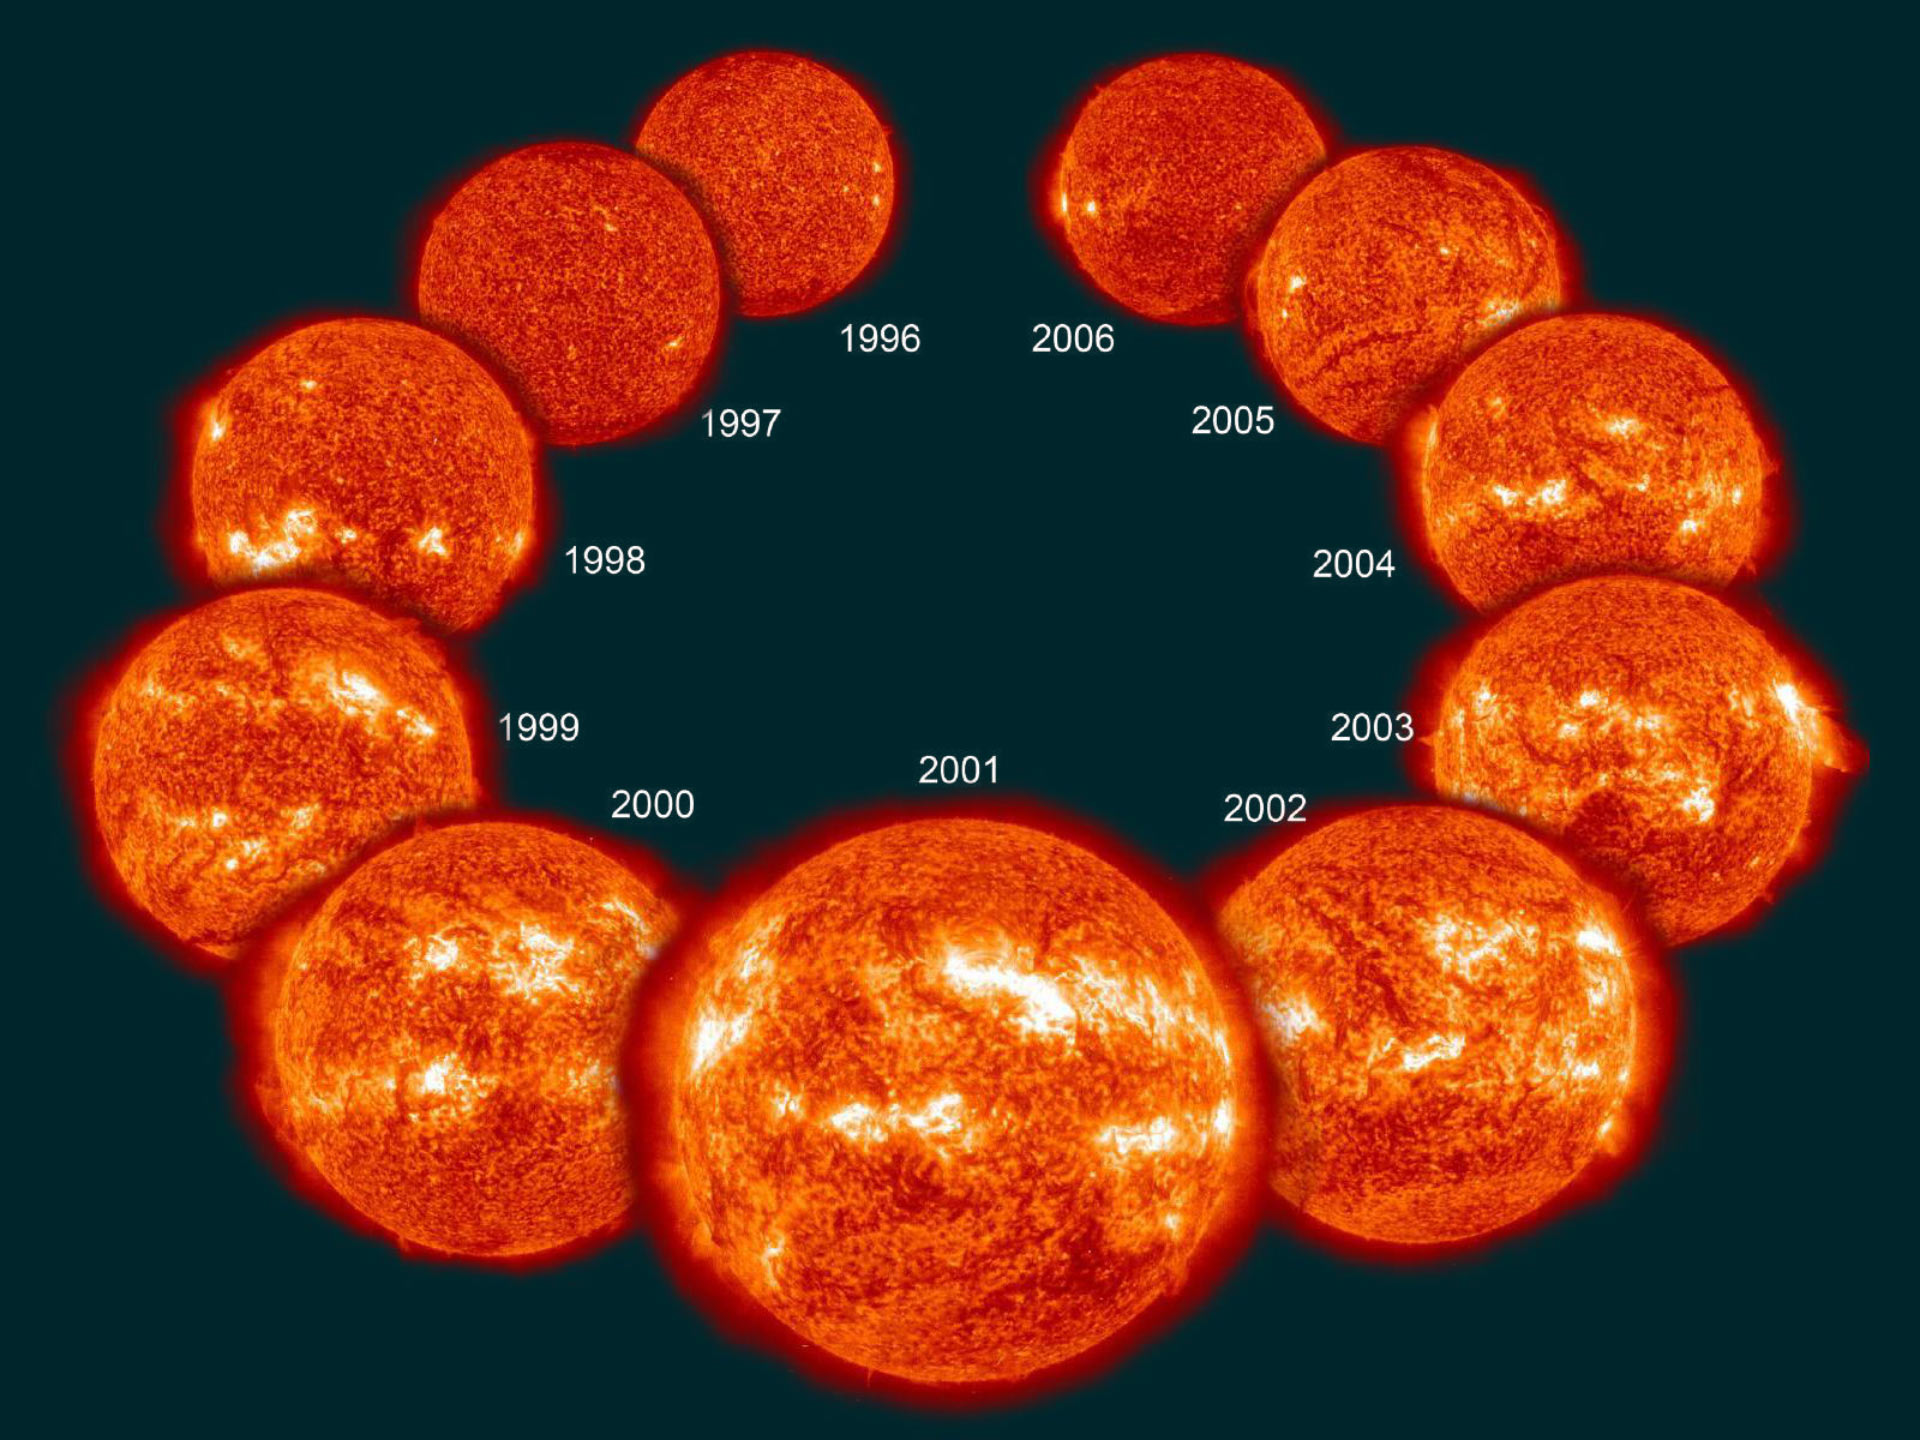 Extreme Cold Winter Weather Can Be Linked to Solar Cycle